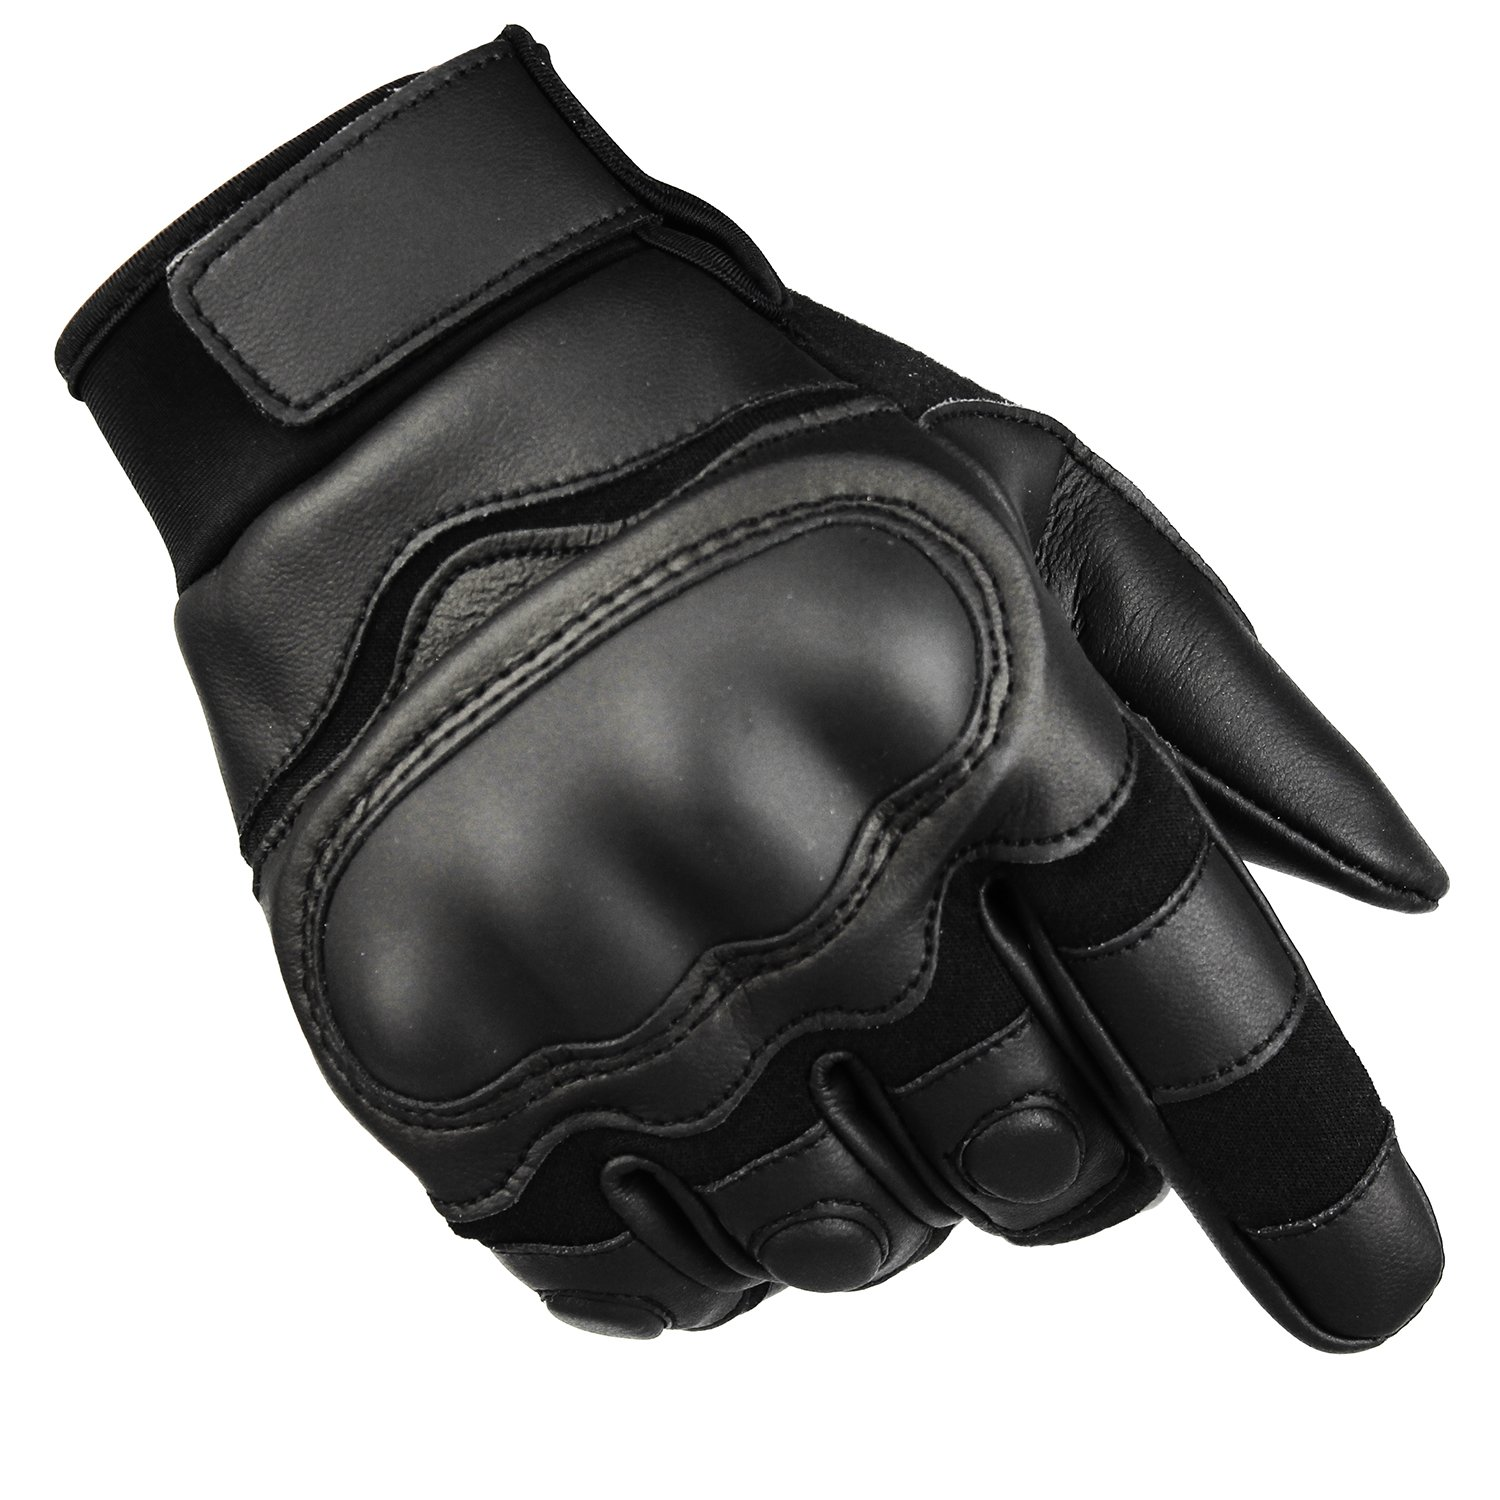 Fuyuanda Full Finger Glove Men`s Sports Outdoor Hard Knuckles Protection Screen Touch Mitten for Military Shooting Outdoor Cycling Riding Motorcycle Airsoft paintball